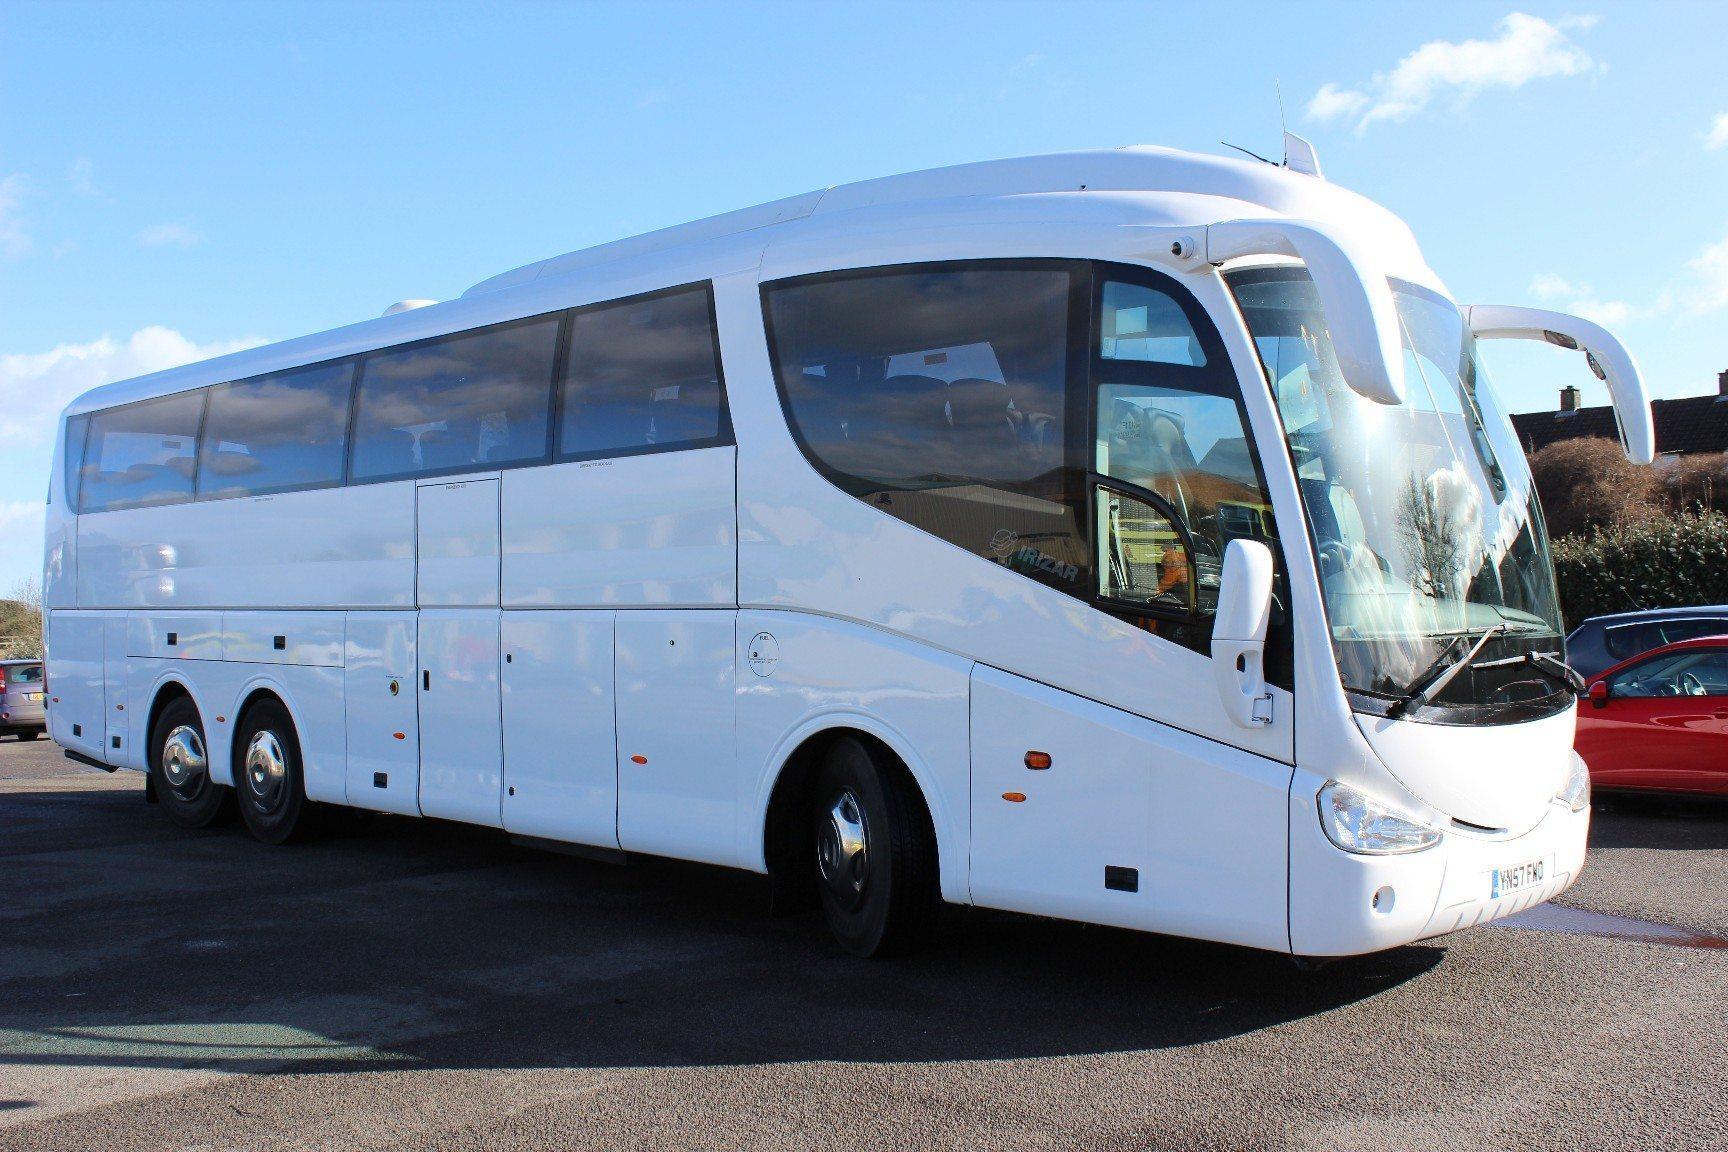 08 Scania K340 Irizar Pb 55 Seats Hills Coaches